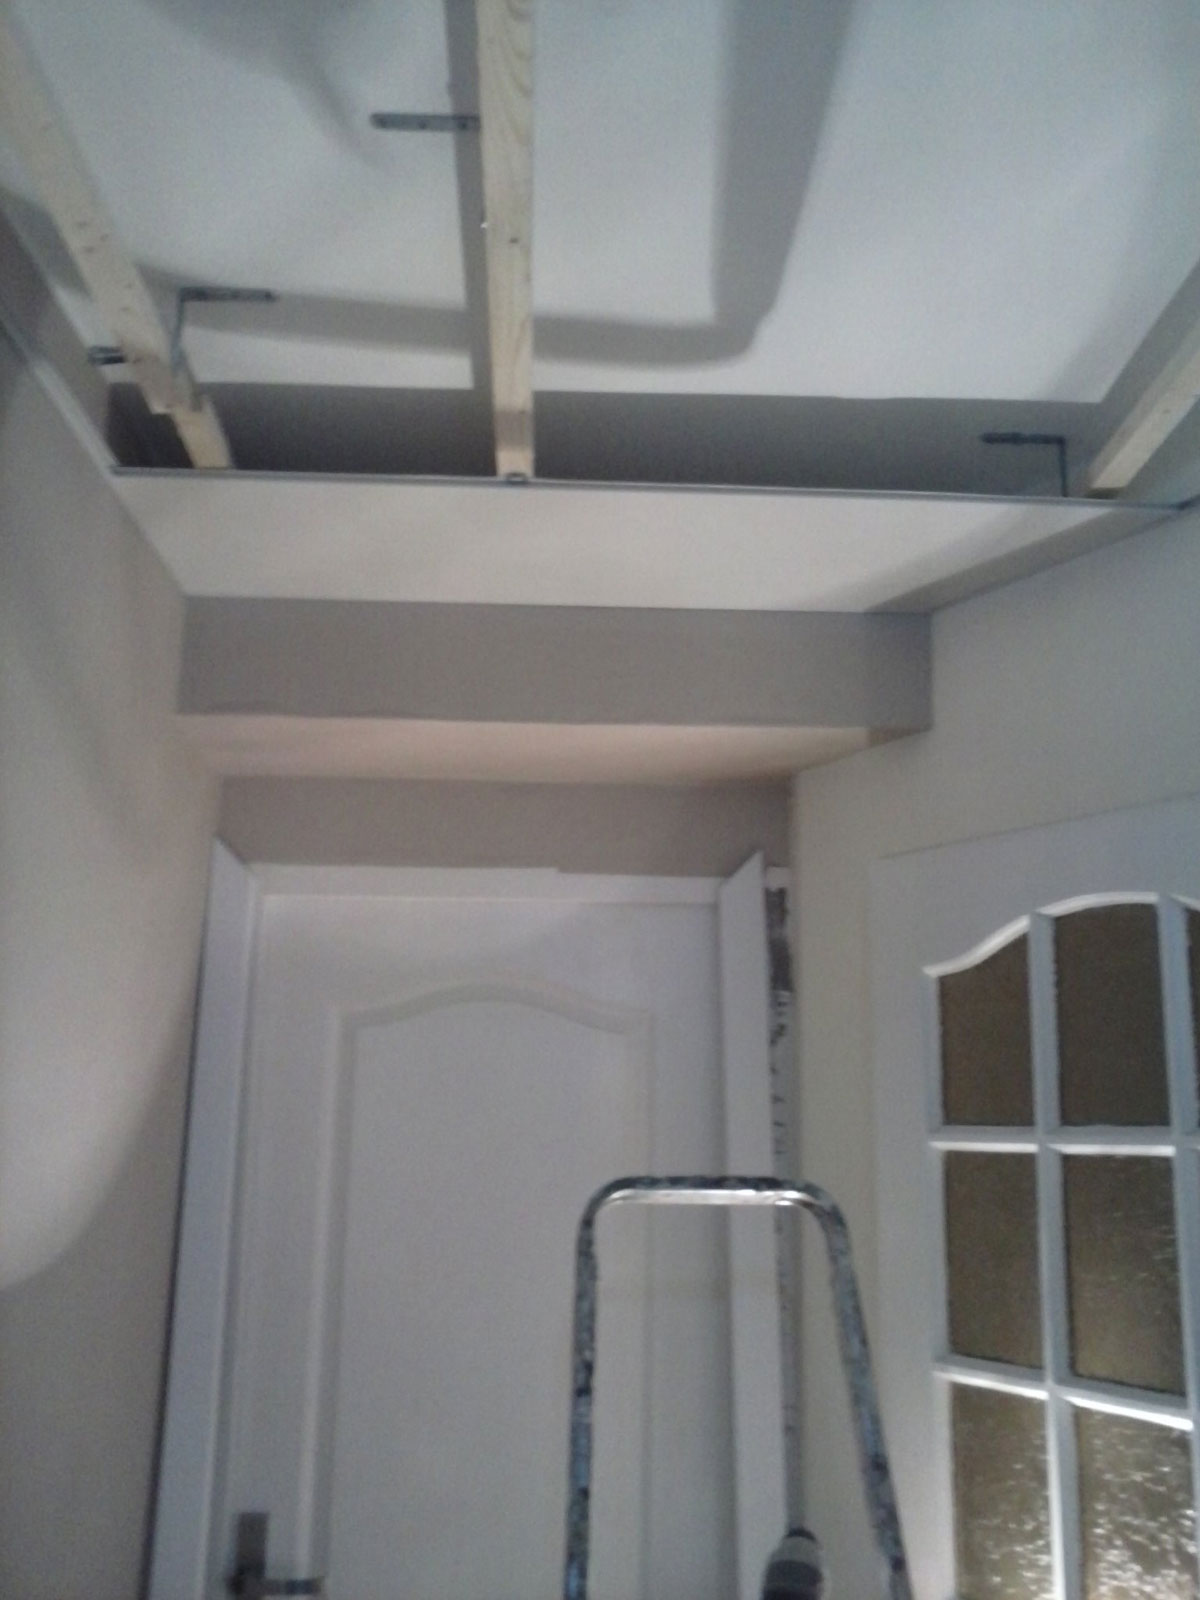 R novation de ma maison transformation d 39 un couloir for Pose d un plafond en lambris pvc